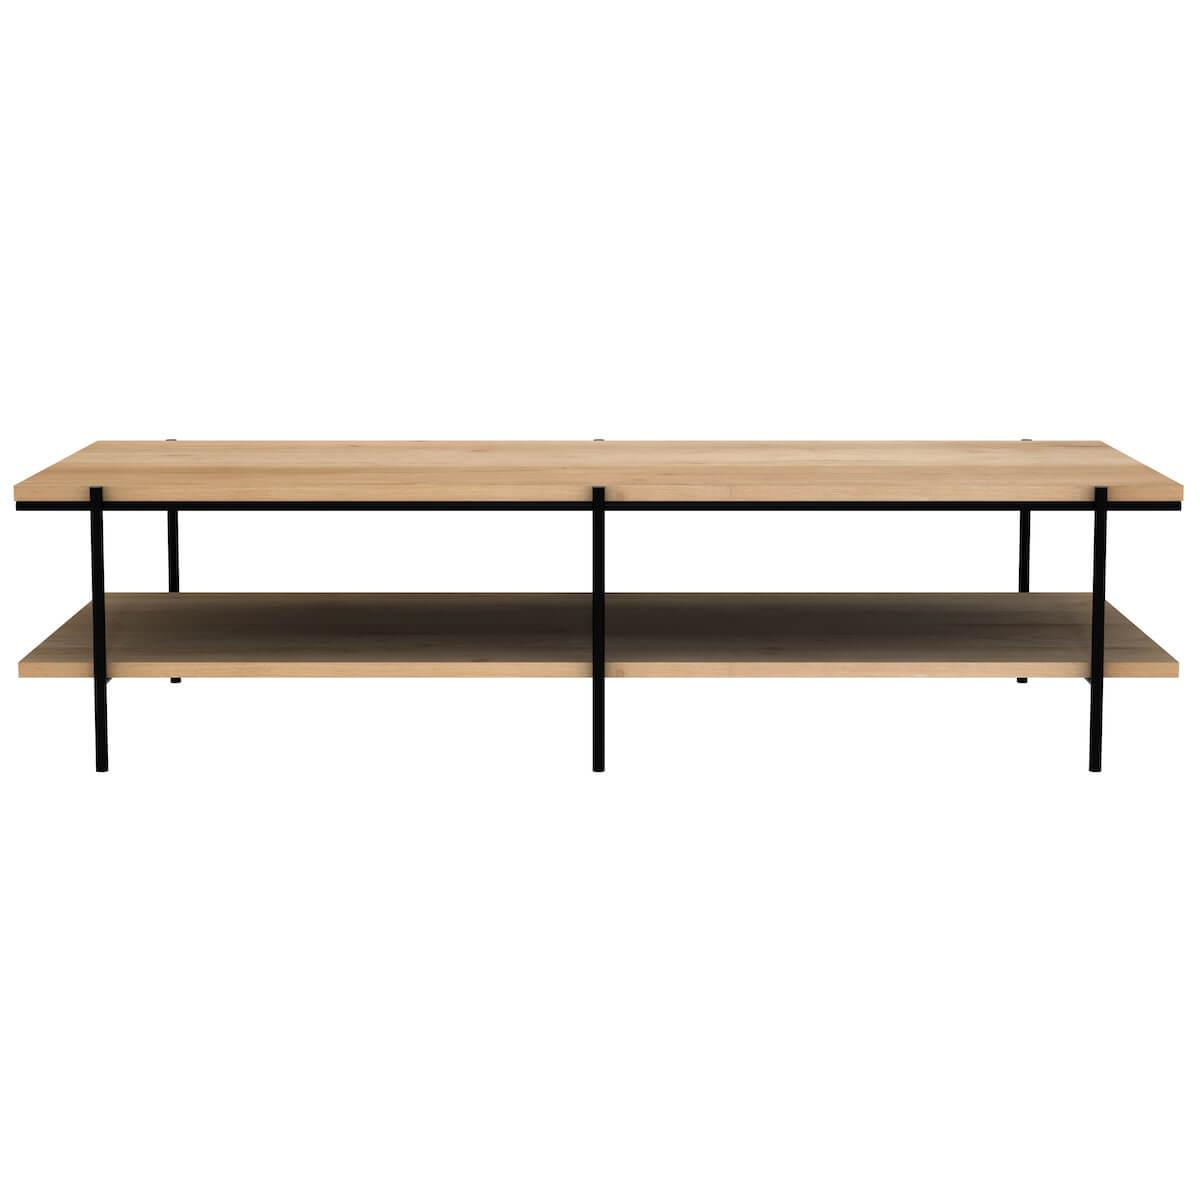 Table basse 60x150cm RISE Ethnicraft chêne